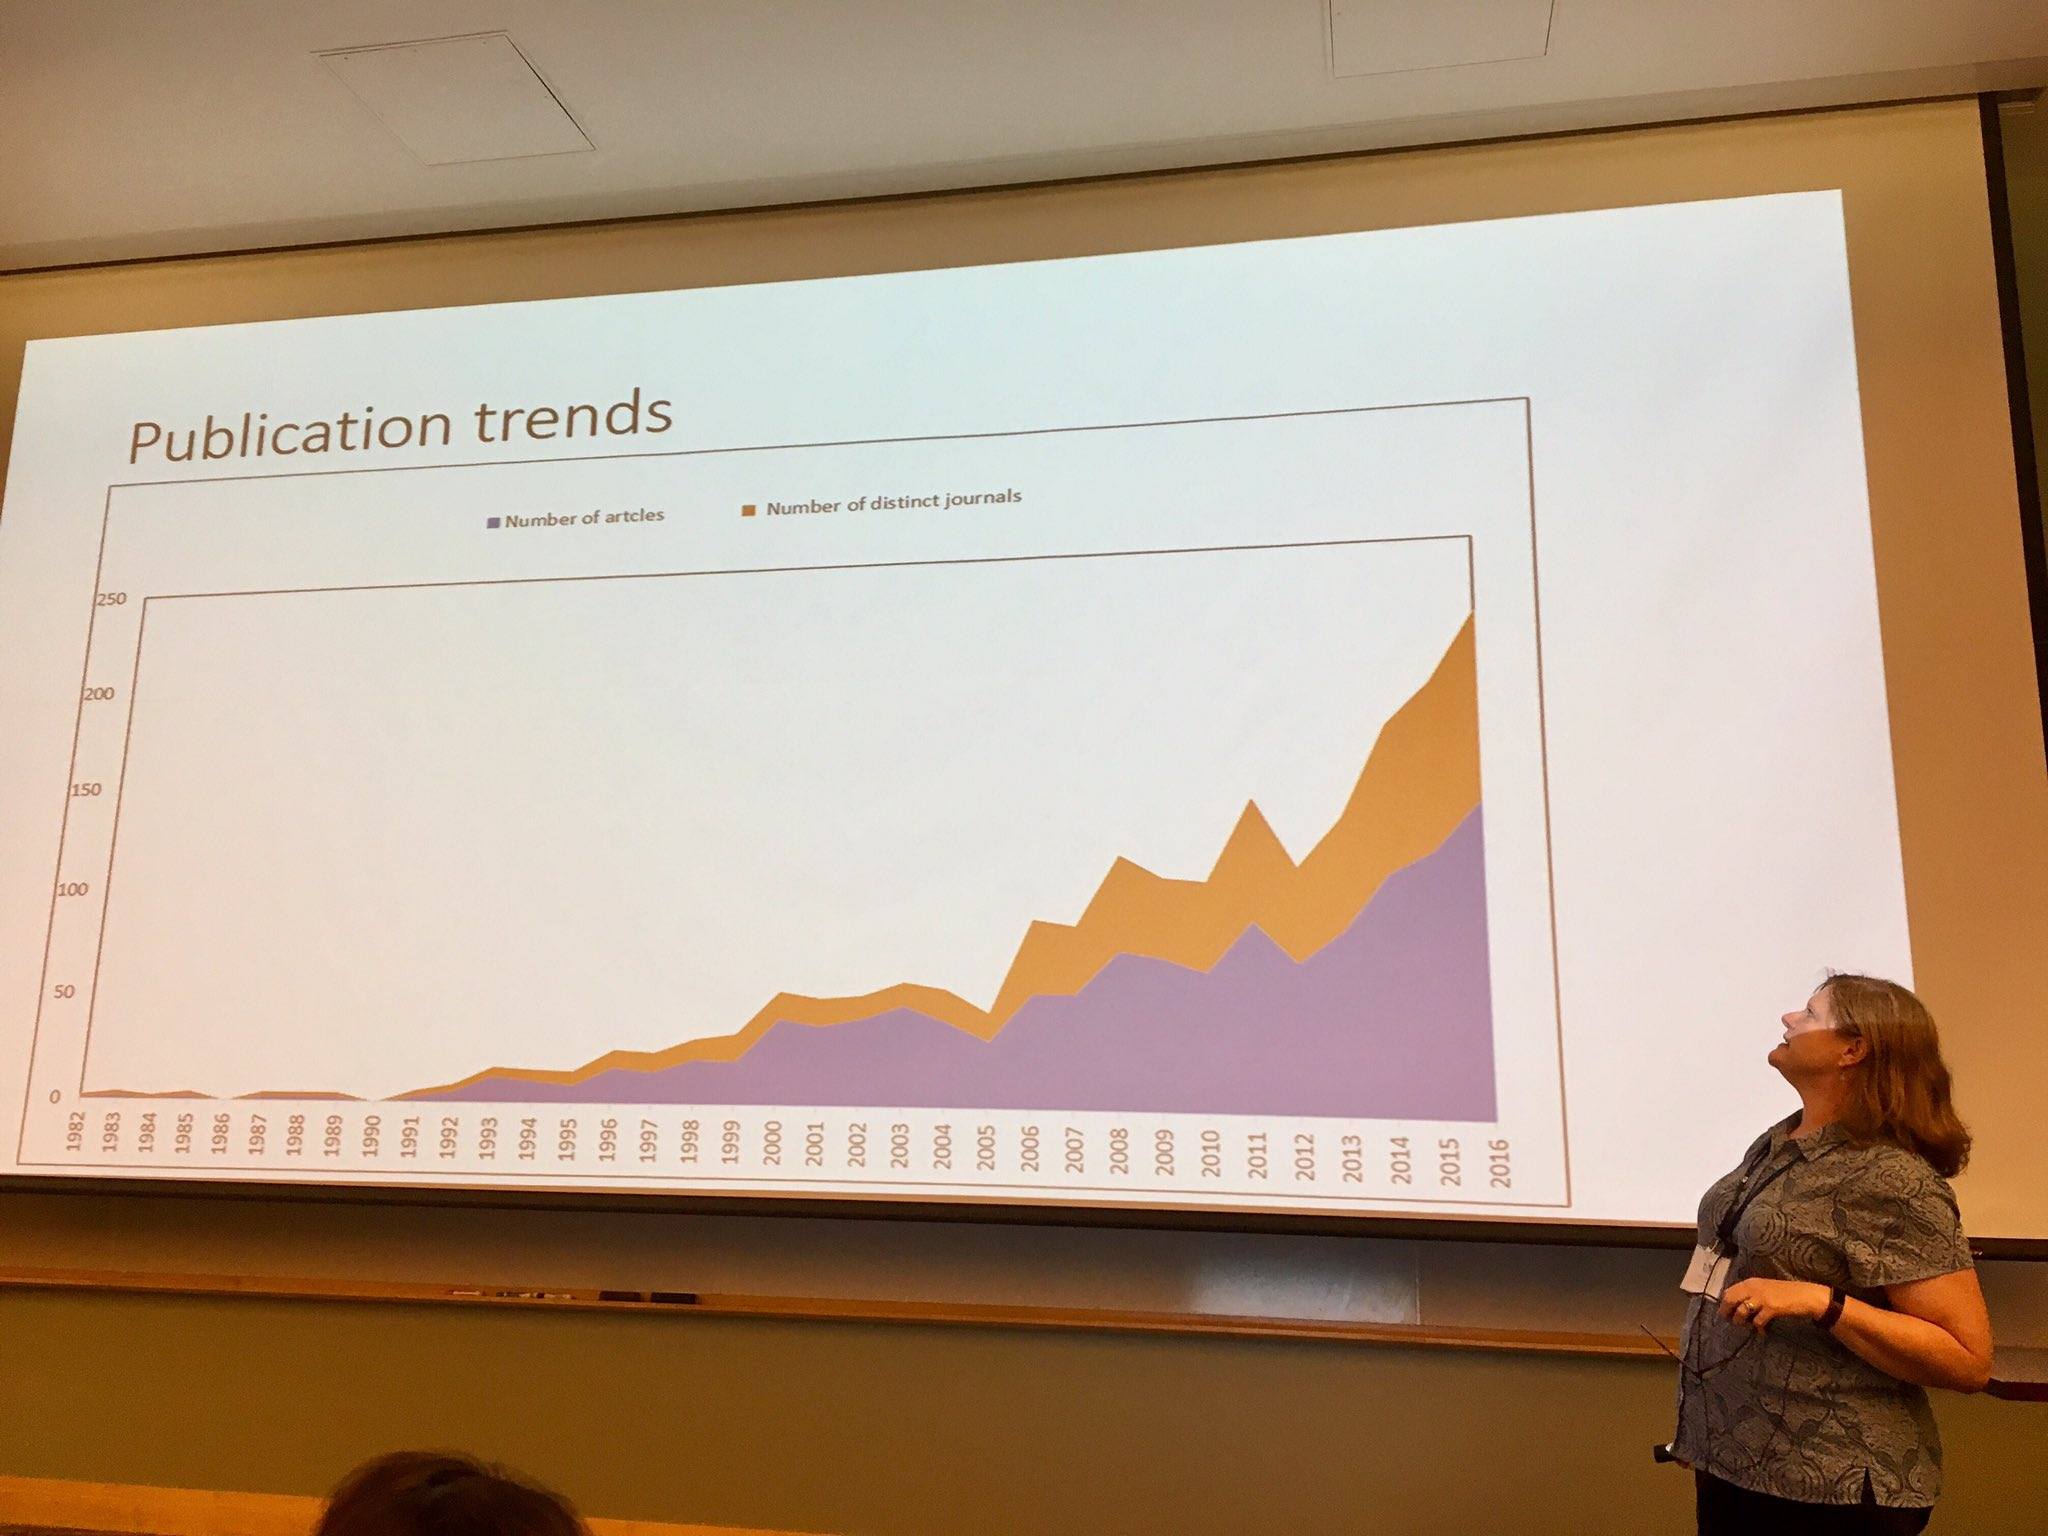 Publications in anthrozoology are on the rise. (Librarian Jane Yatcilla) #isaz2017 https://t.co/BtLFNc7PBn